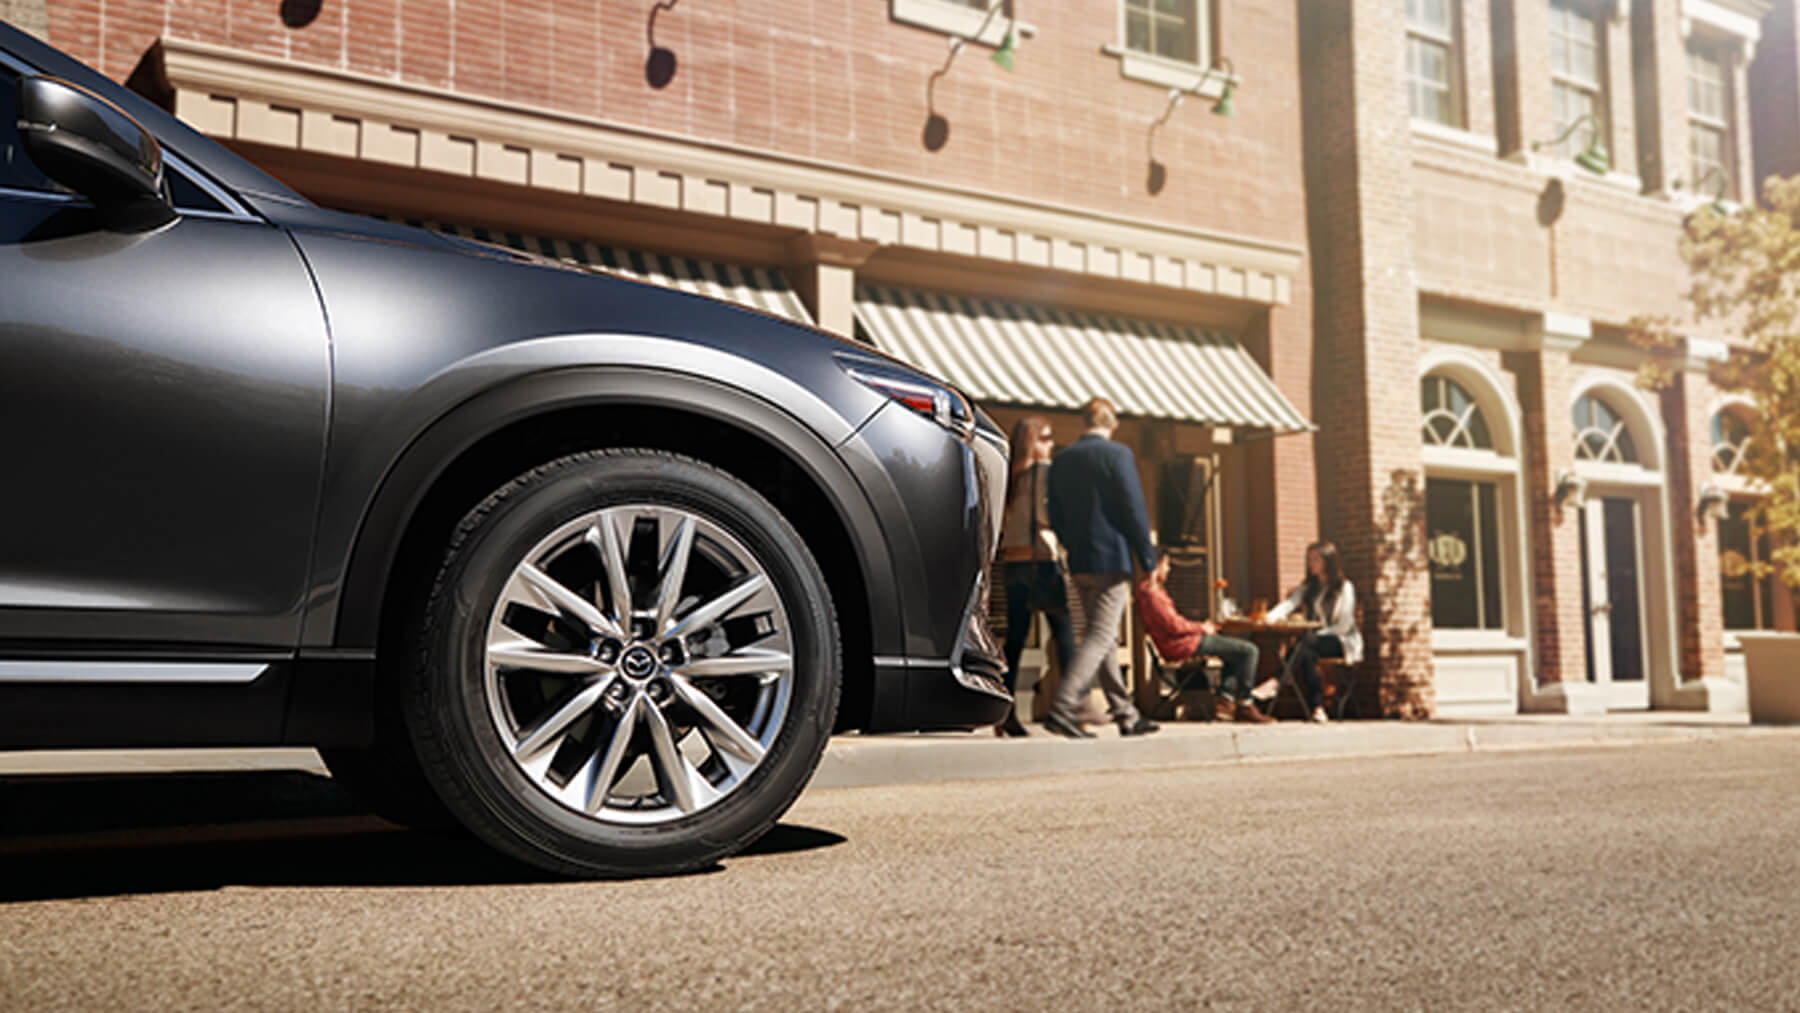 2016-cx9-machine-grey-sunny-street-mde-cx9-gallery